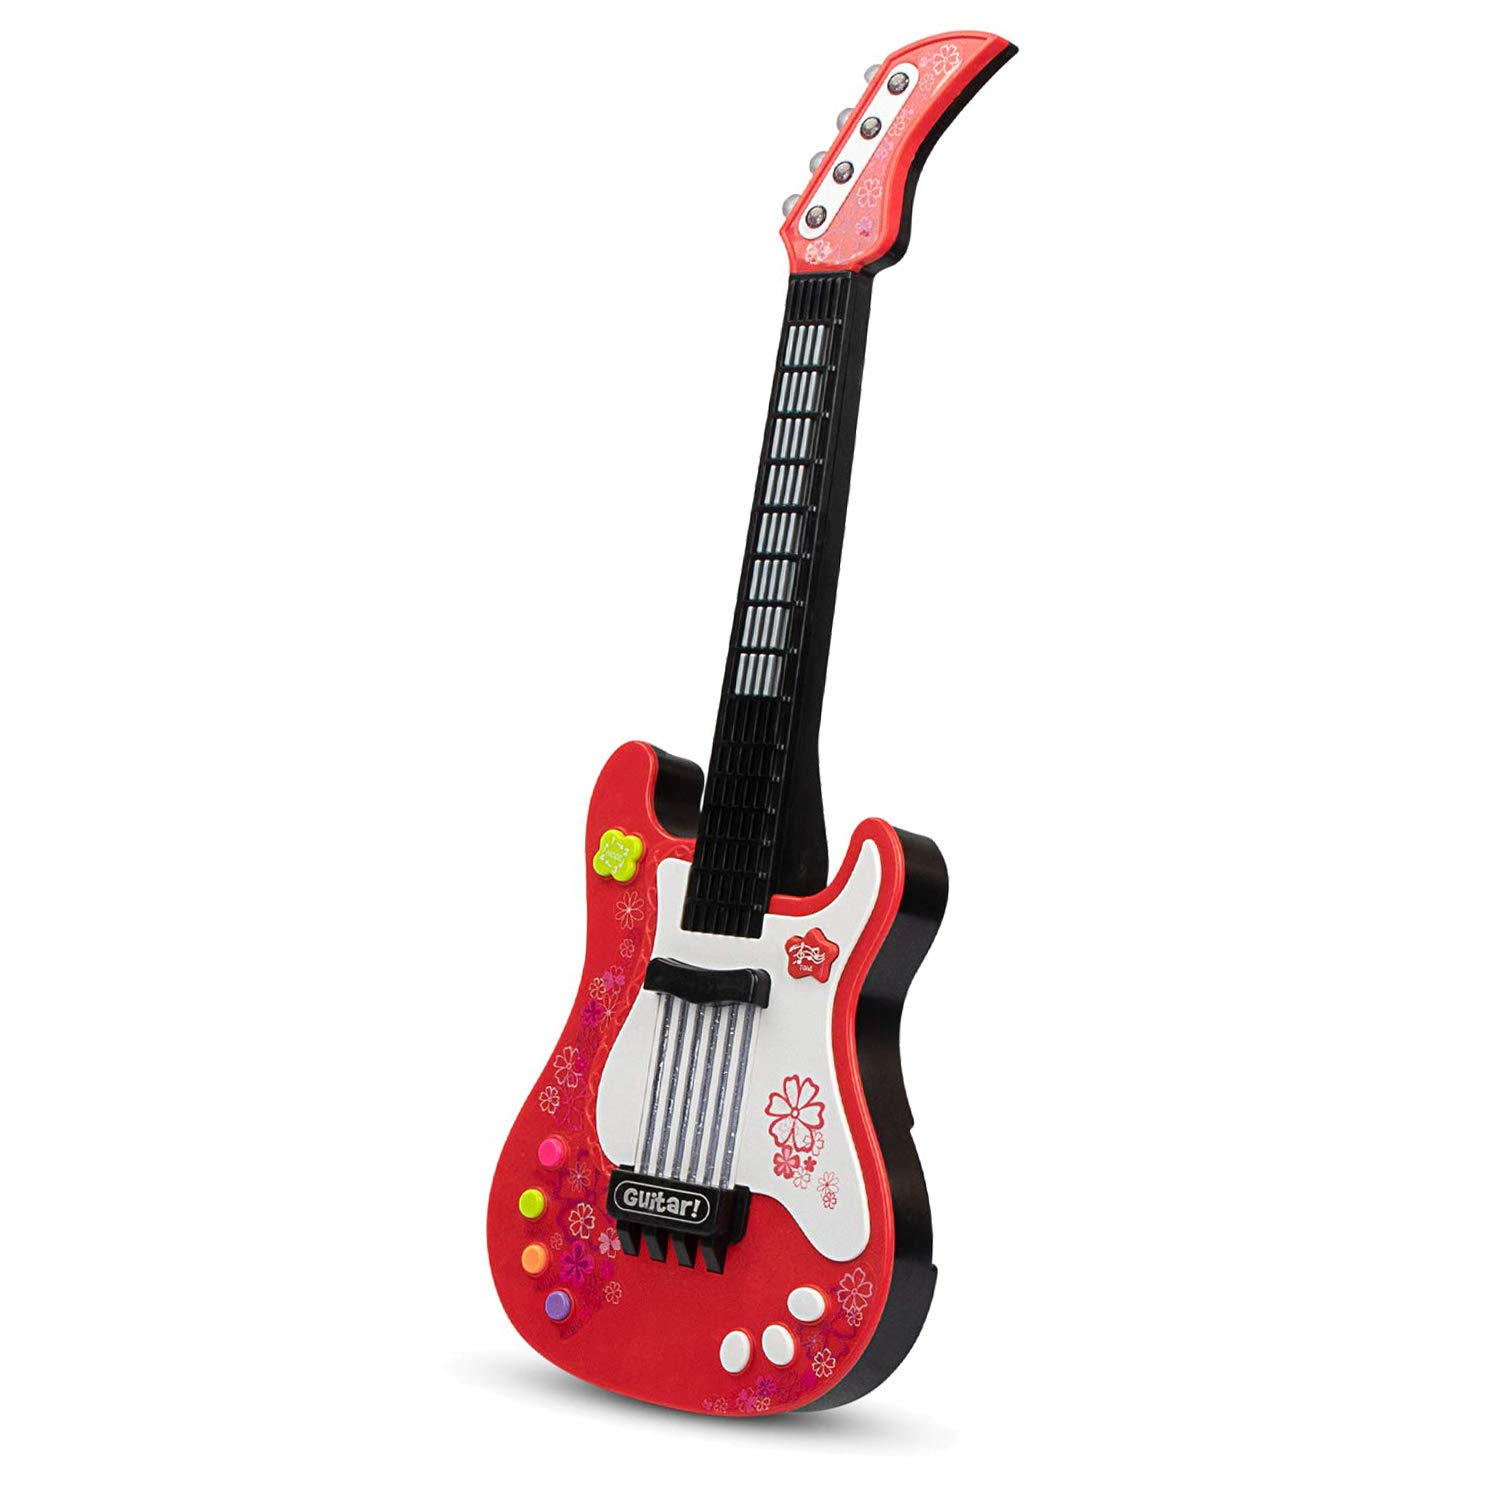 aPerfectLife Kids Electric Guitar Toys with Vibrant Sounds No String Musical Instruments Educational Toy for Beginner Boys Girls Toddlers (Red) by aPerfectLife